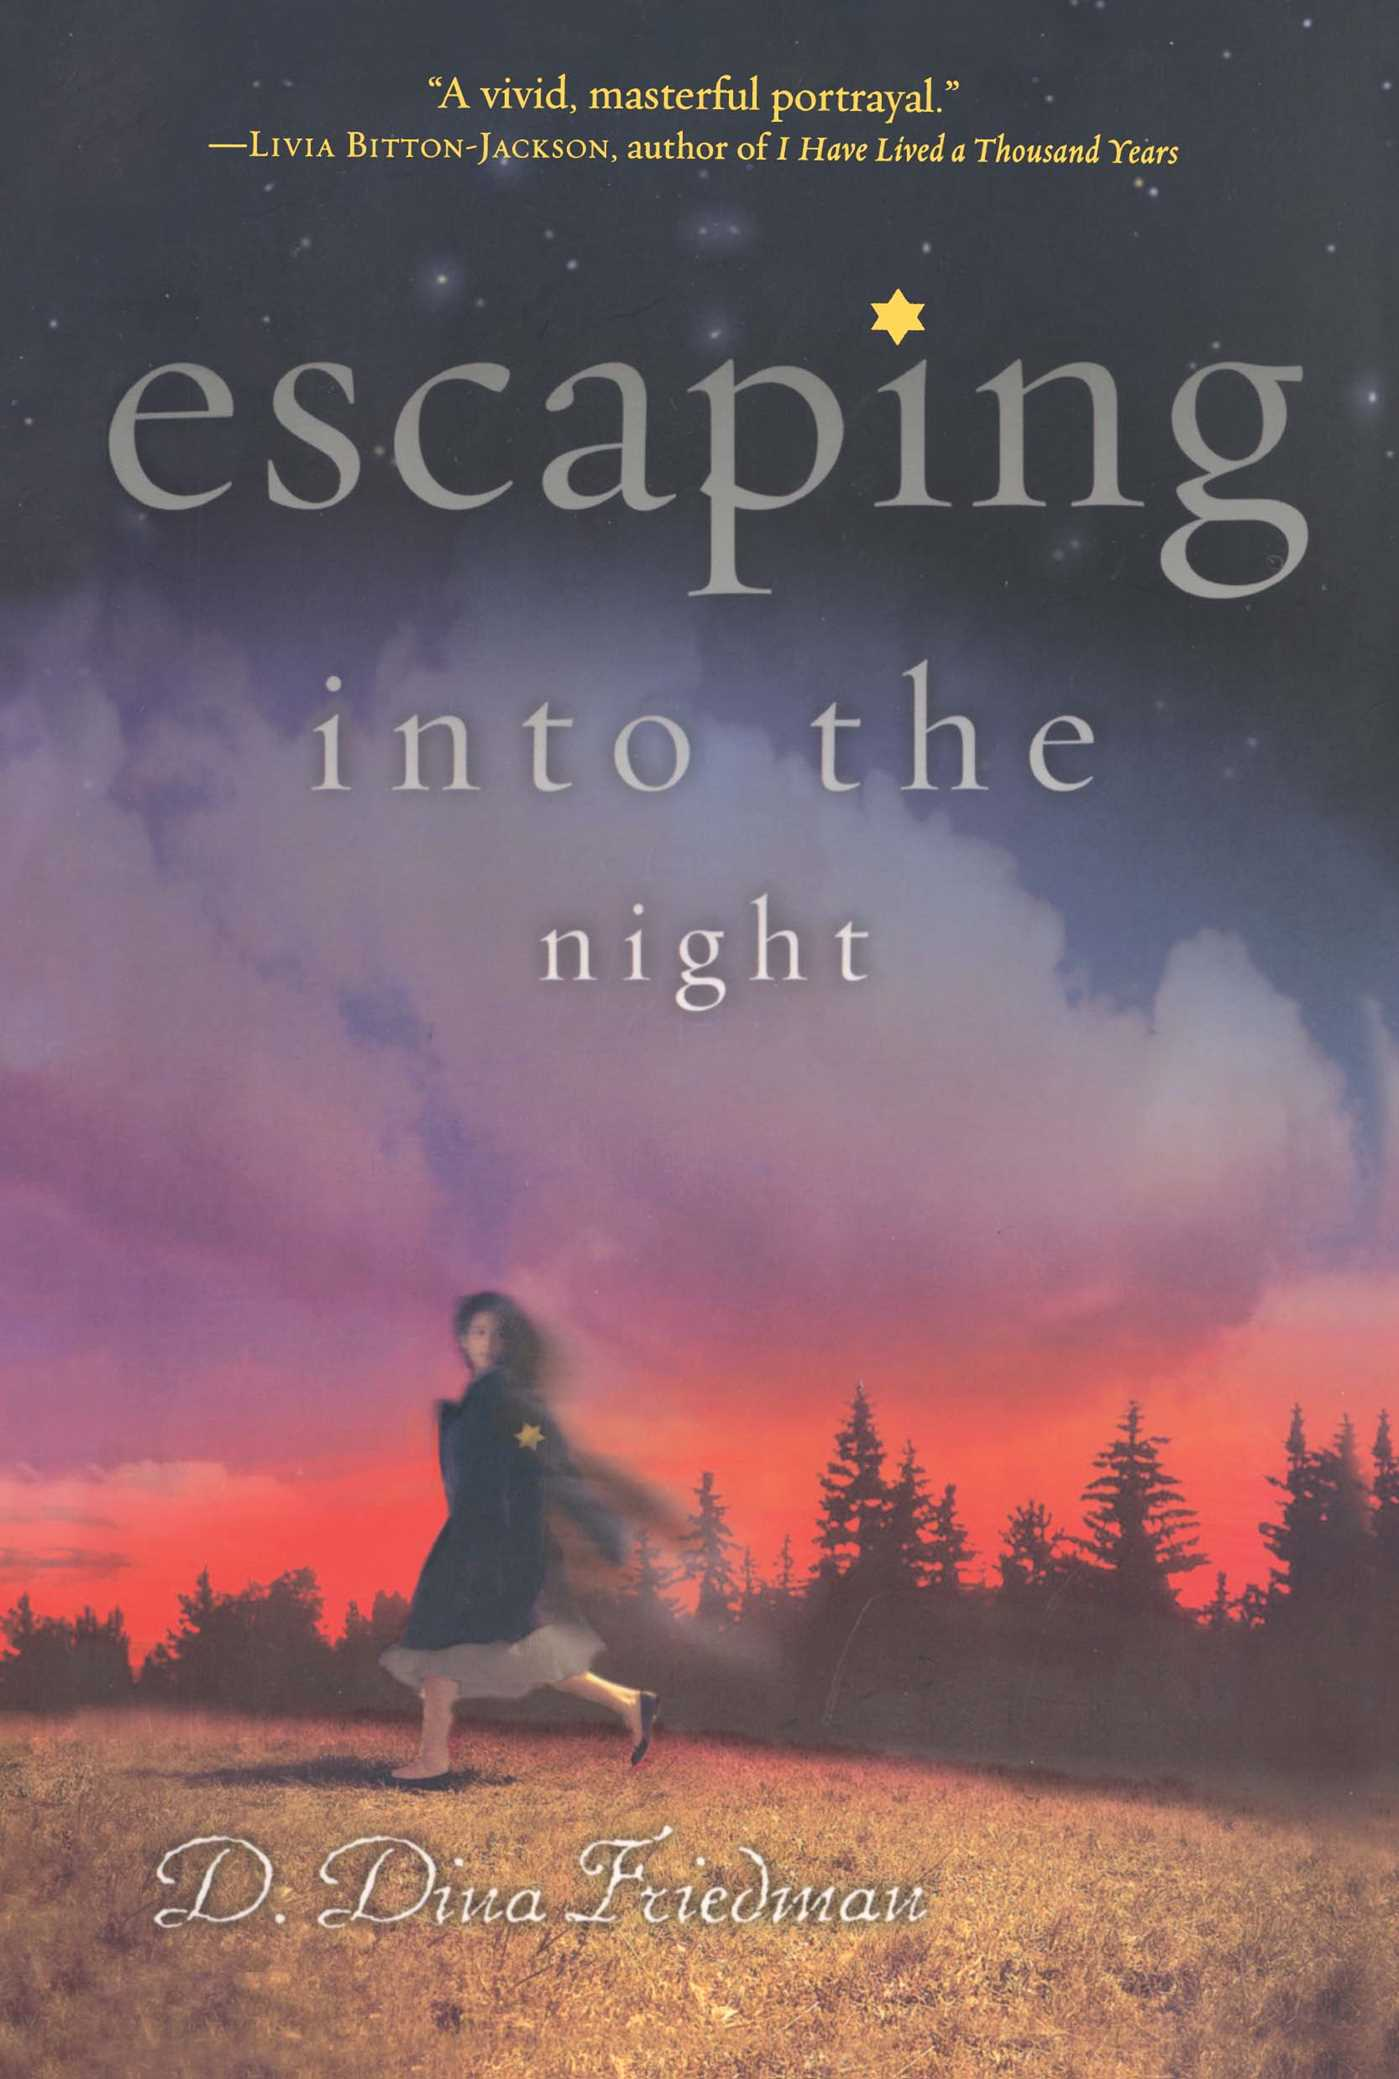 Escaping-into-the-night-9781416986485_hr